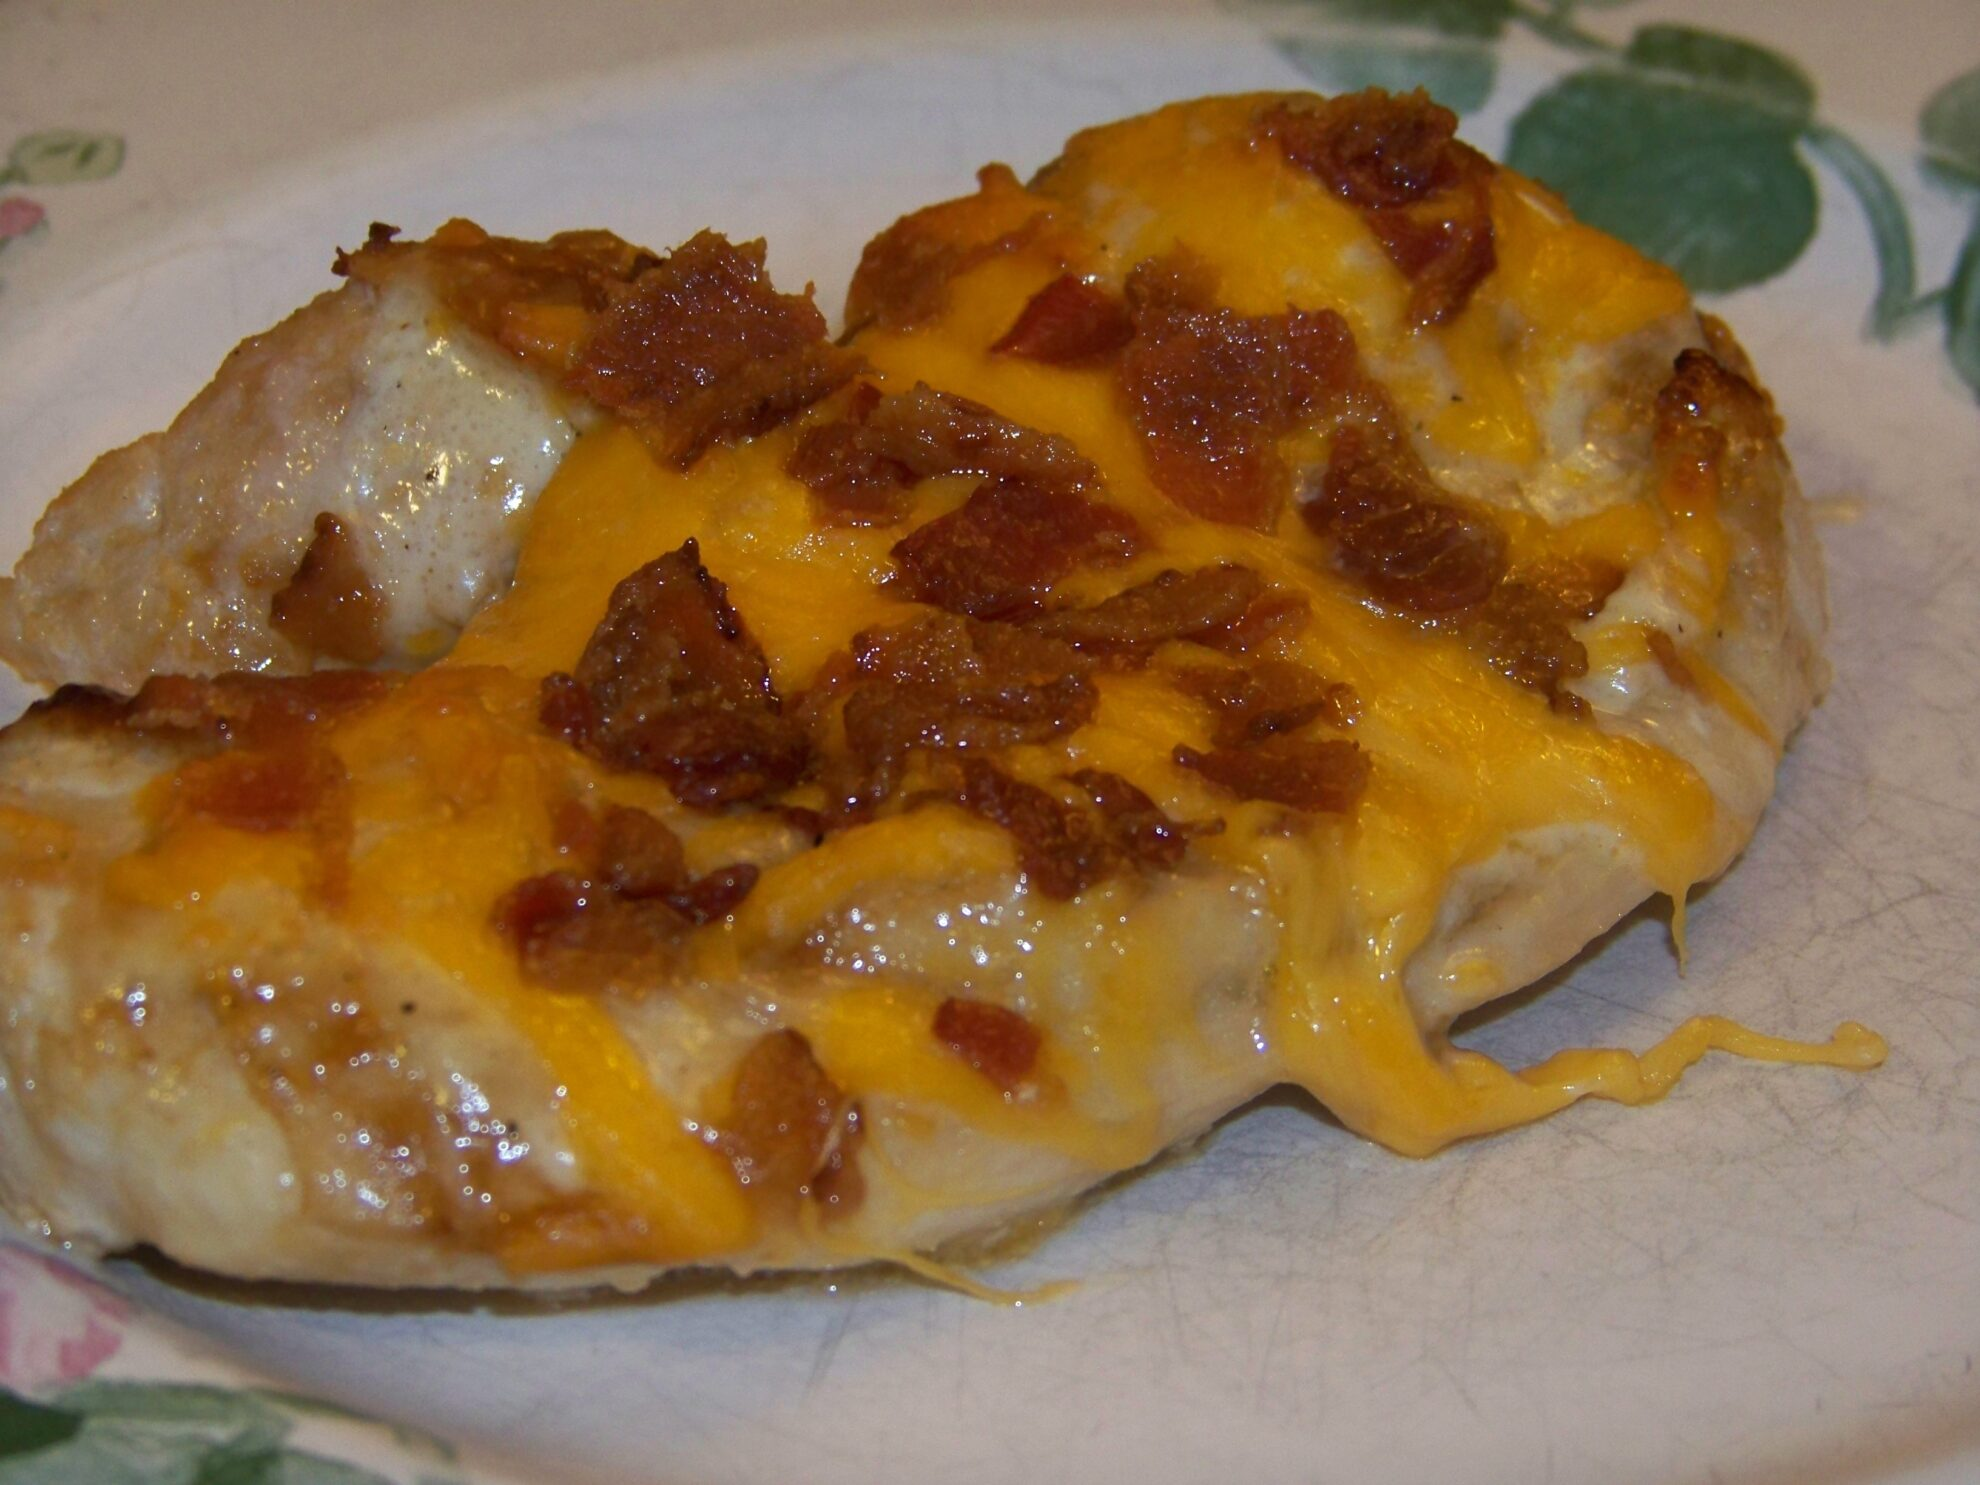 Baked Chicken Topped with Cheddar Bacon and Sauces